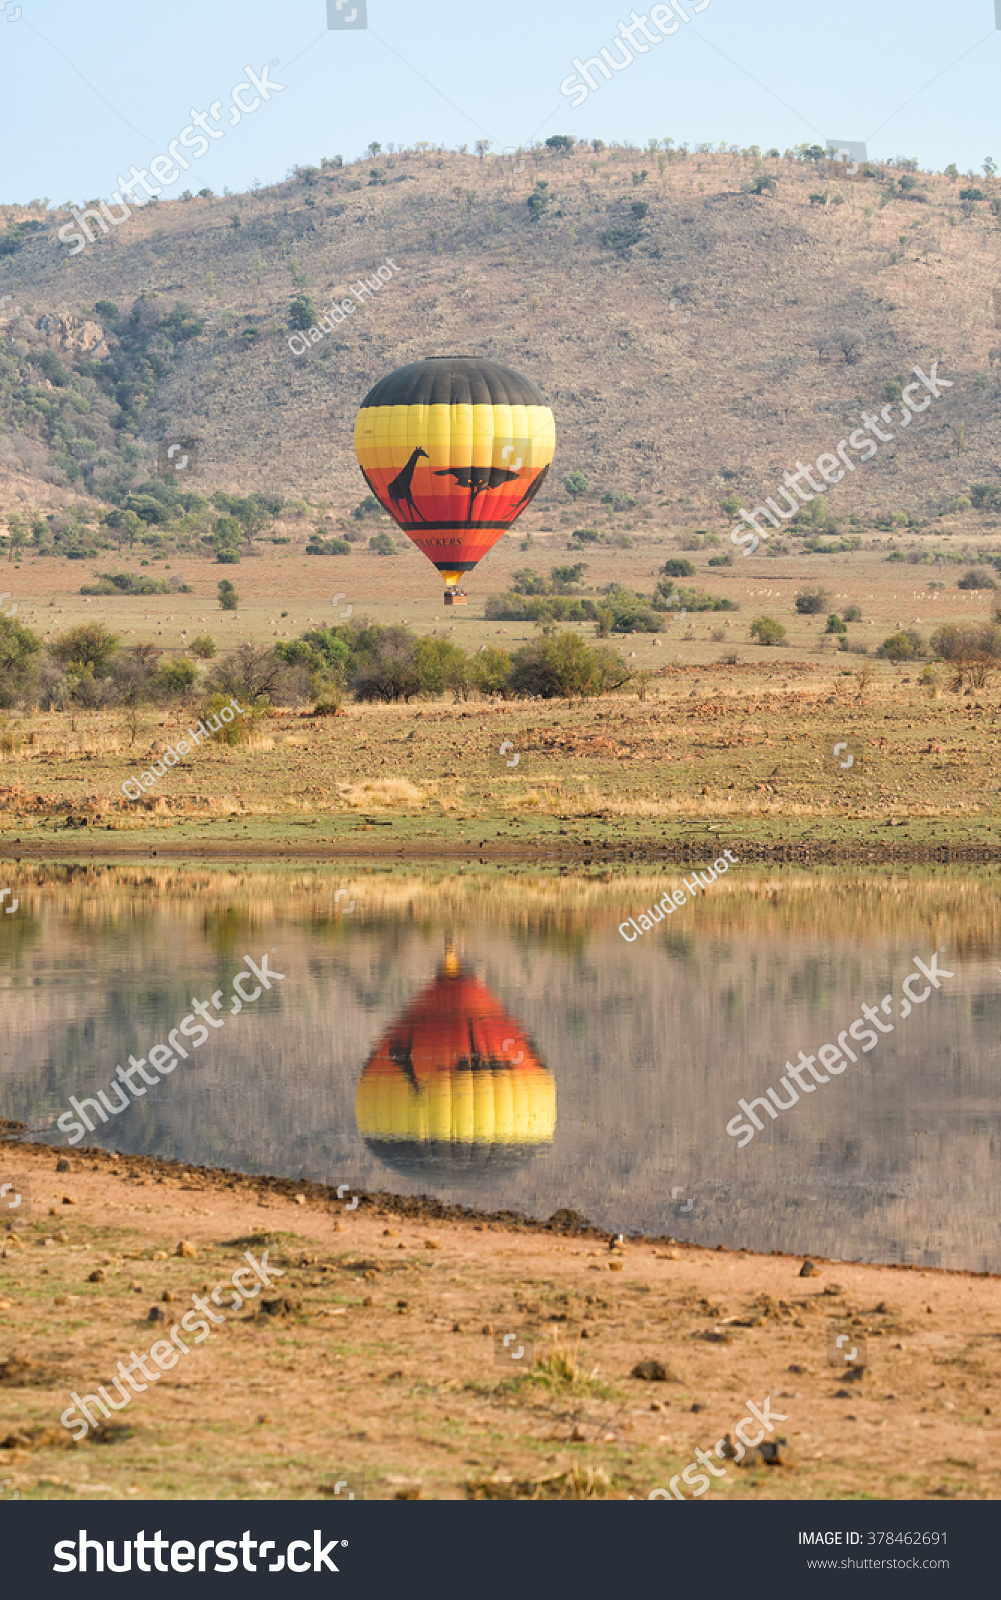 PILANESBERG NATIONAL PARK, SOUTH AFRICA - SEPTEMBER 13, 2015: Airtrackers Hot Air Balloon Safaris flies over this game rich African region. This is a popular tourist activity.